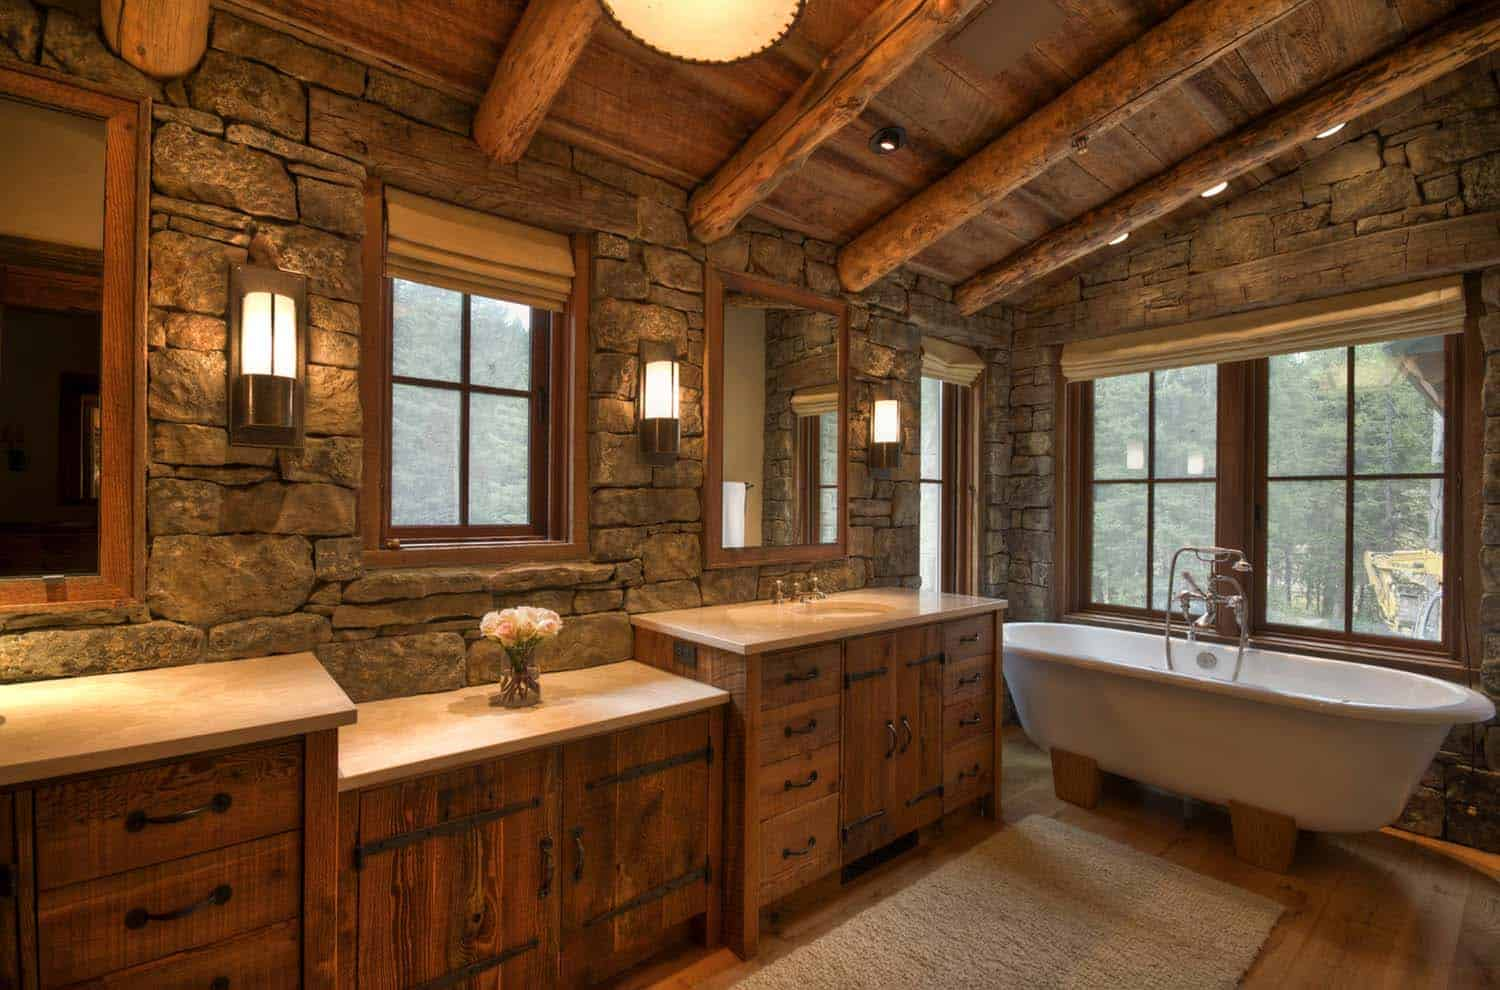 Rustic Mountain Home-Laura Fedro Interiors-13-1 Kindesign